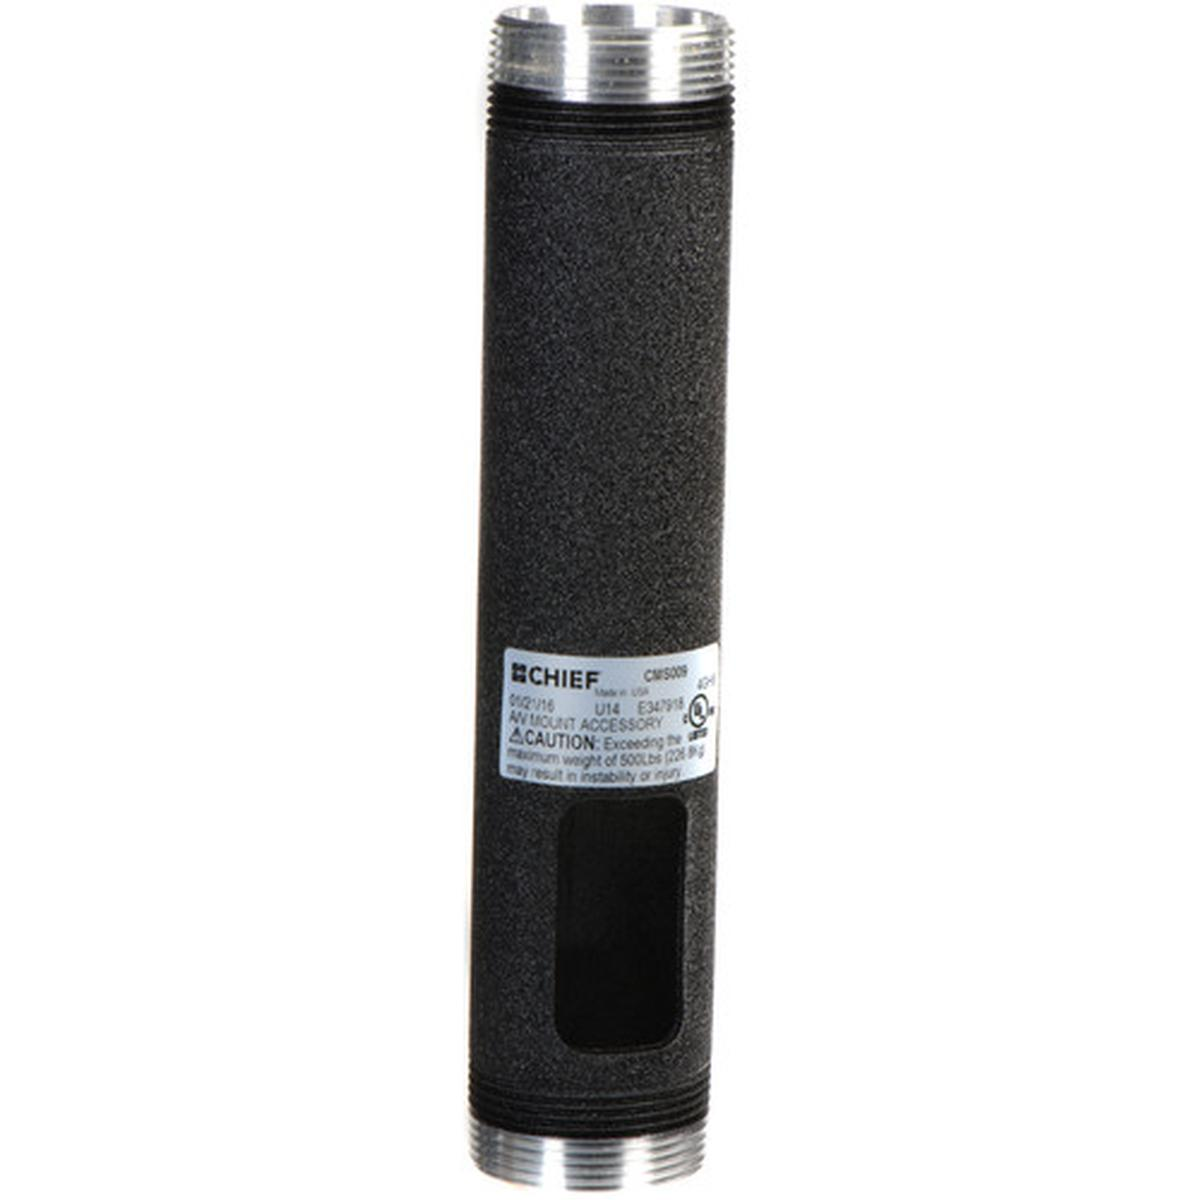 Chief Cms009 Speed Connect Fixed Extension Column Black